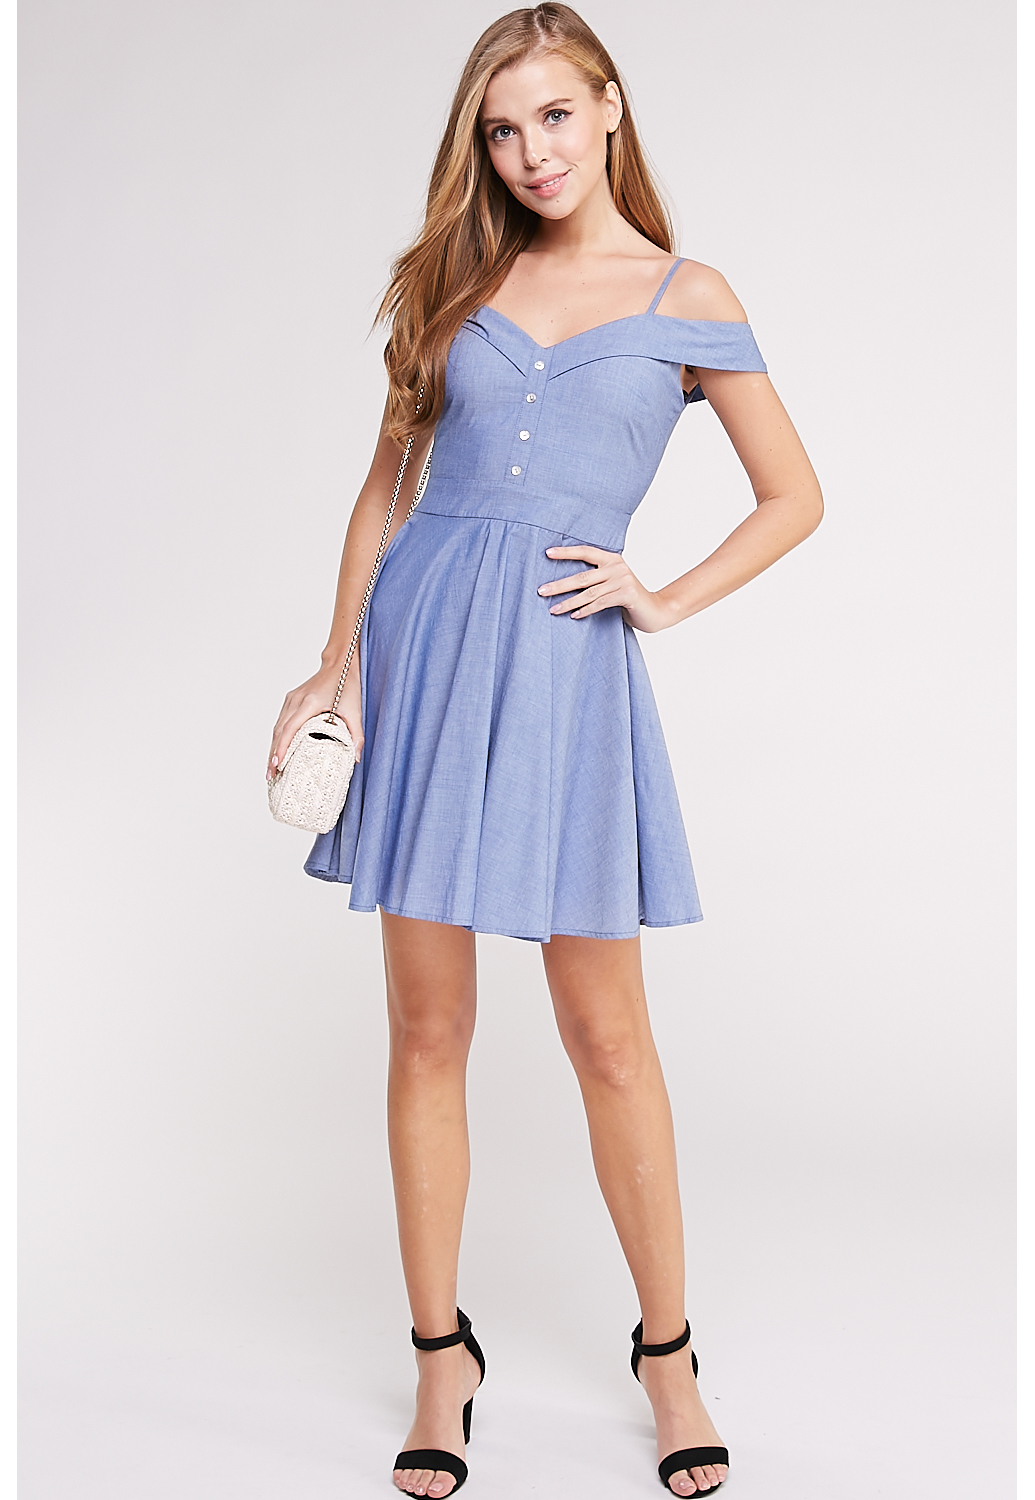 Open Shoulder Fit And Flare Mini Dress